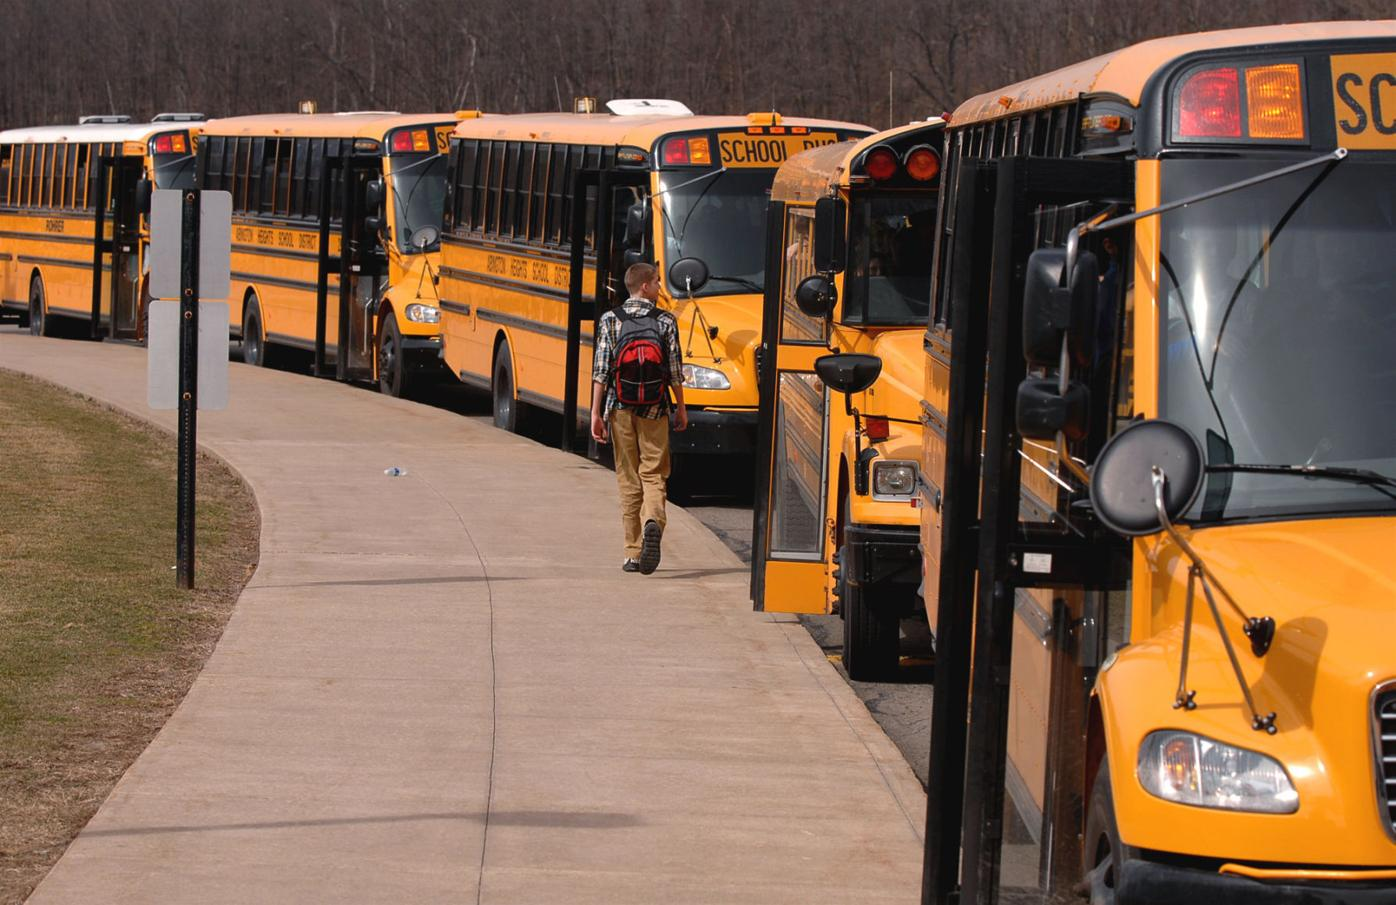 School districts plan summer schools, curriculum upgrades with COVID relief funds